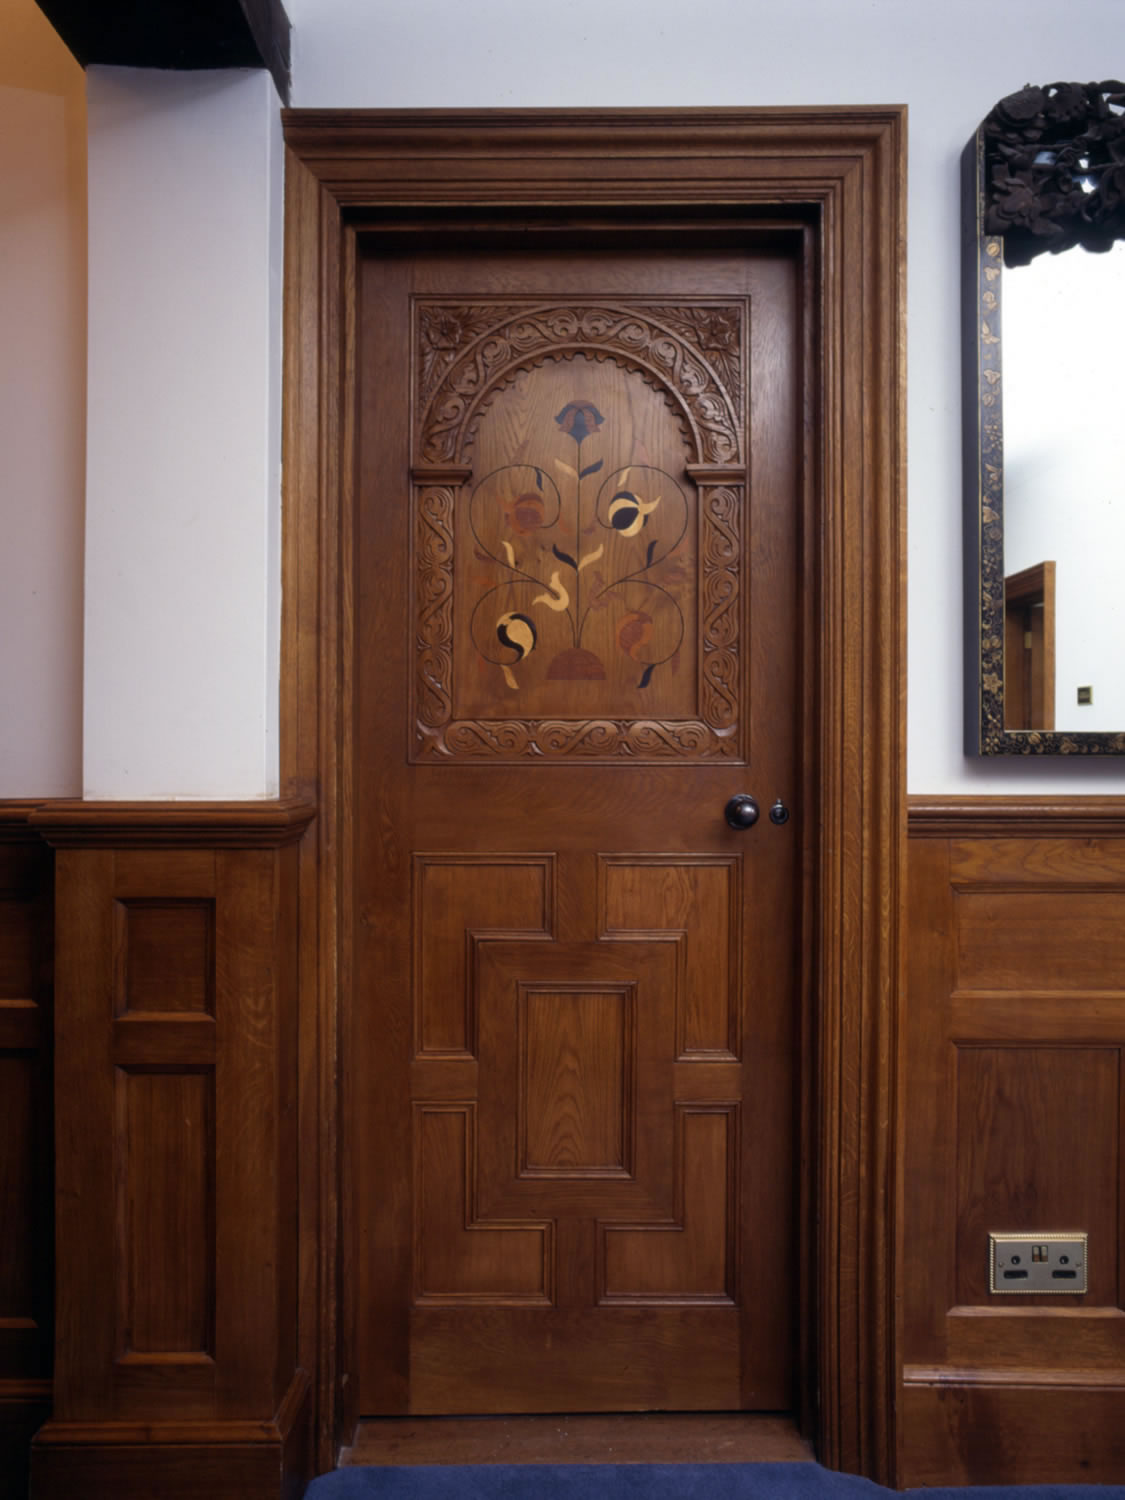 C17th style oak panelled door with carved arcade and inlaid decoration